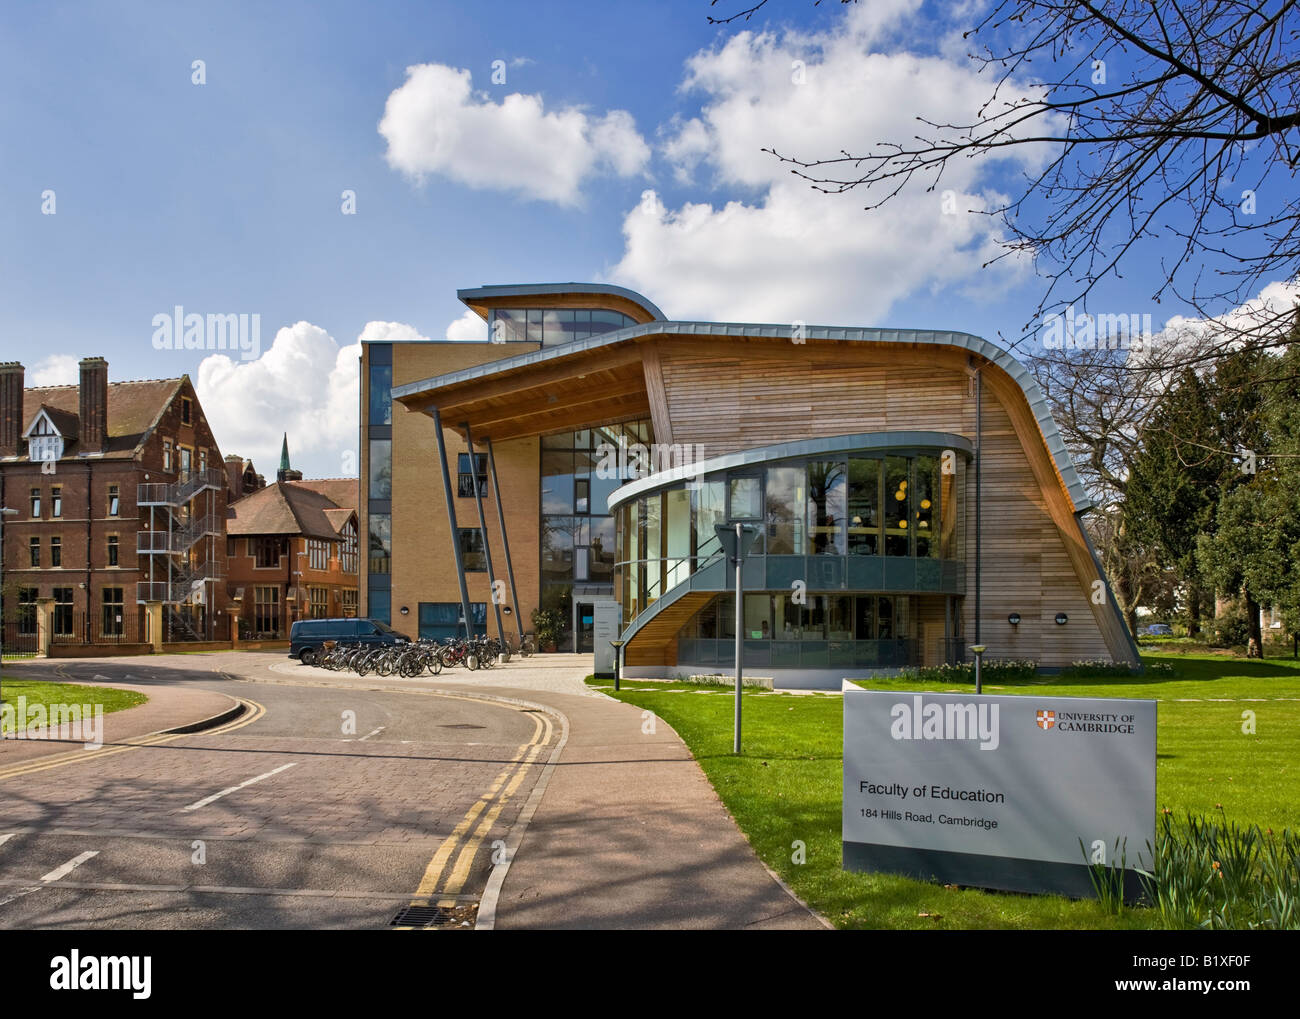 Faculty of Education Cambridge - Stock Image